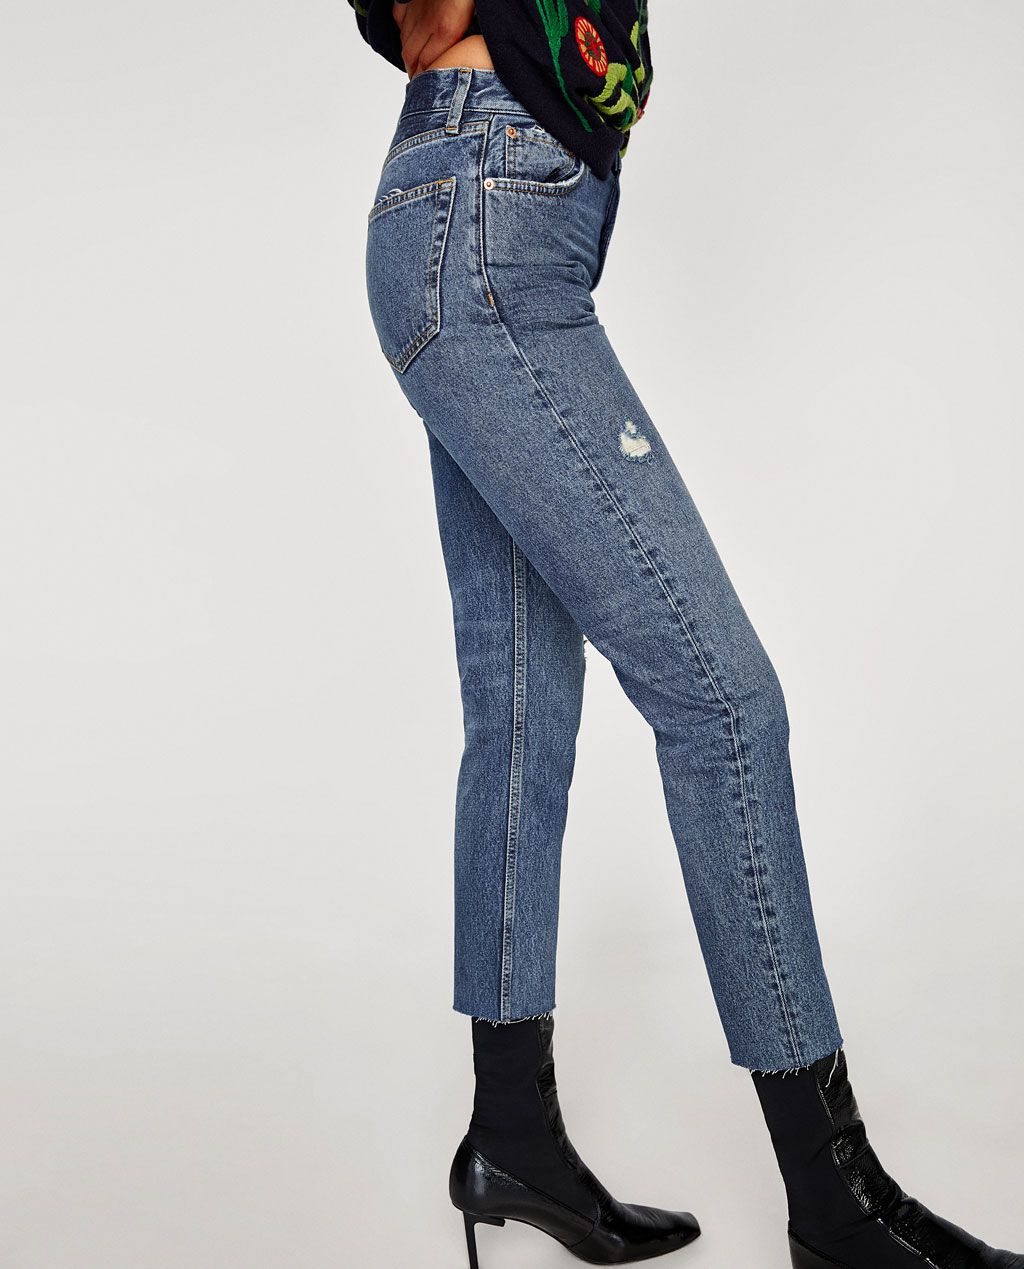 5b6104b4 THE VINTAGE HIGH WAIST JEANS IN ROSE BLUE-High waist-JEANS-WOMAN | ZARA  United States